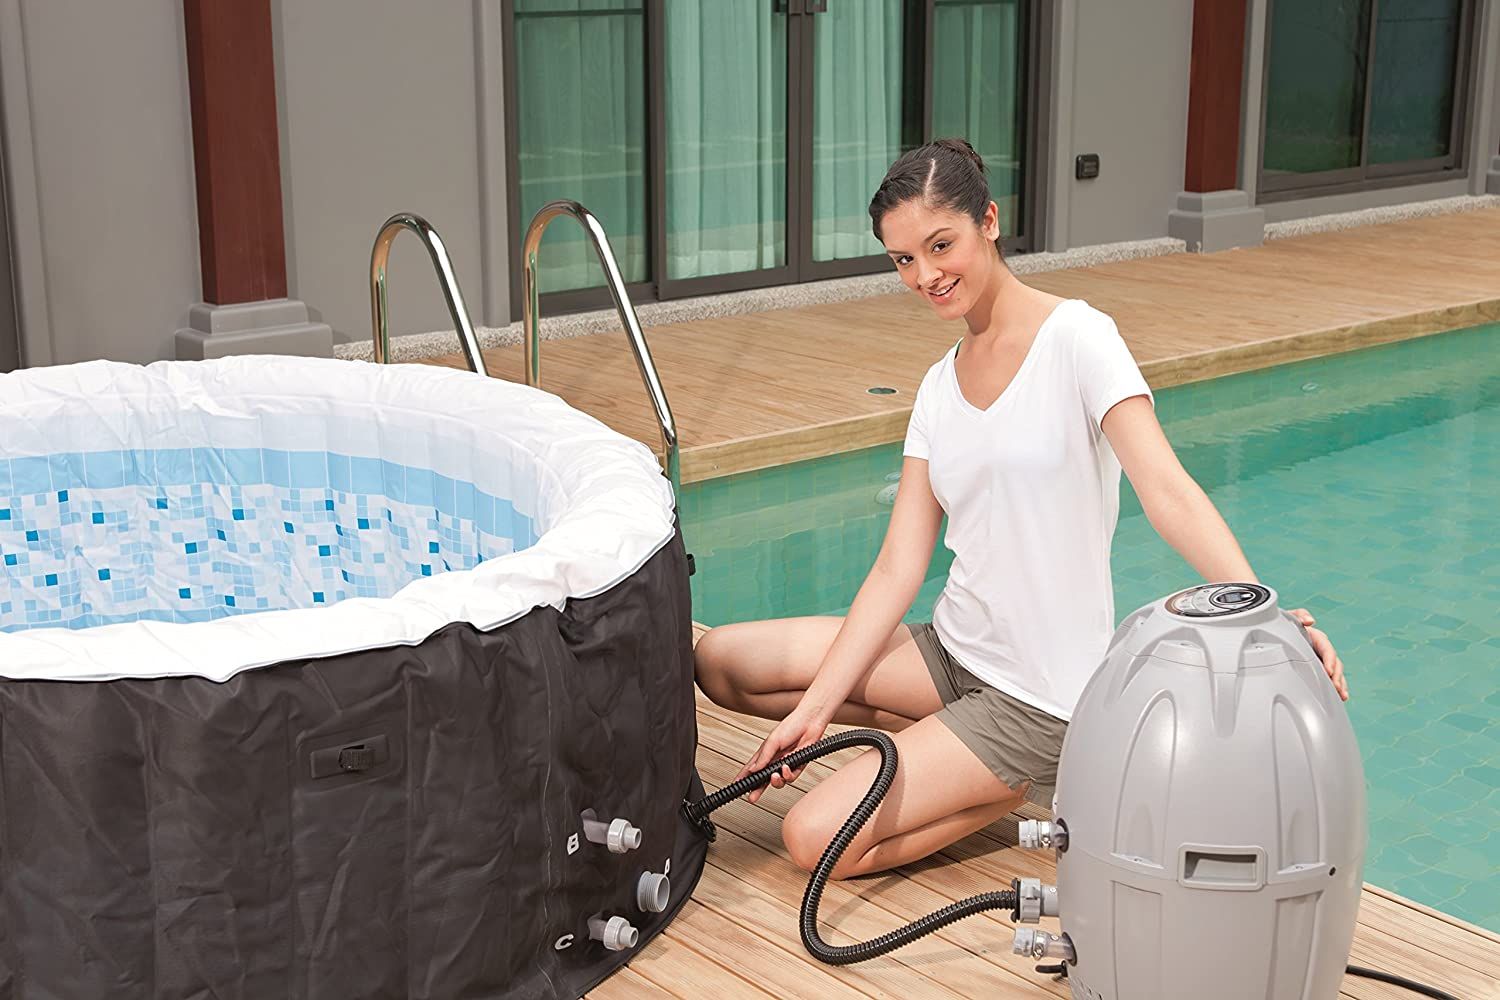 If you're not sure on which inflatable jacuzzi to buy, have a look at our top picks.